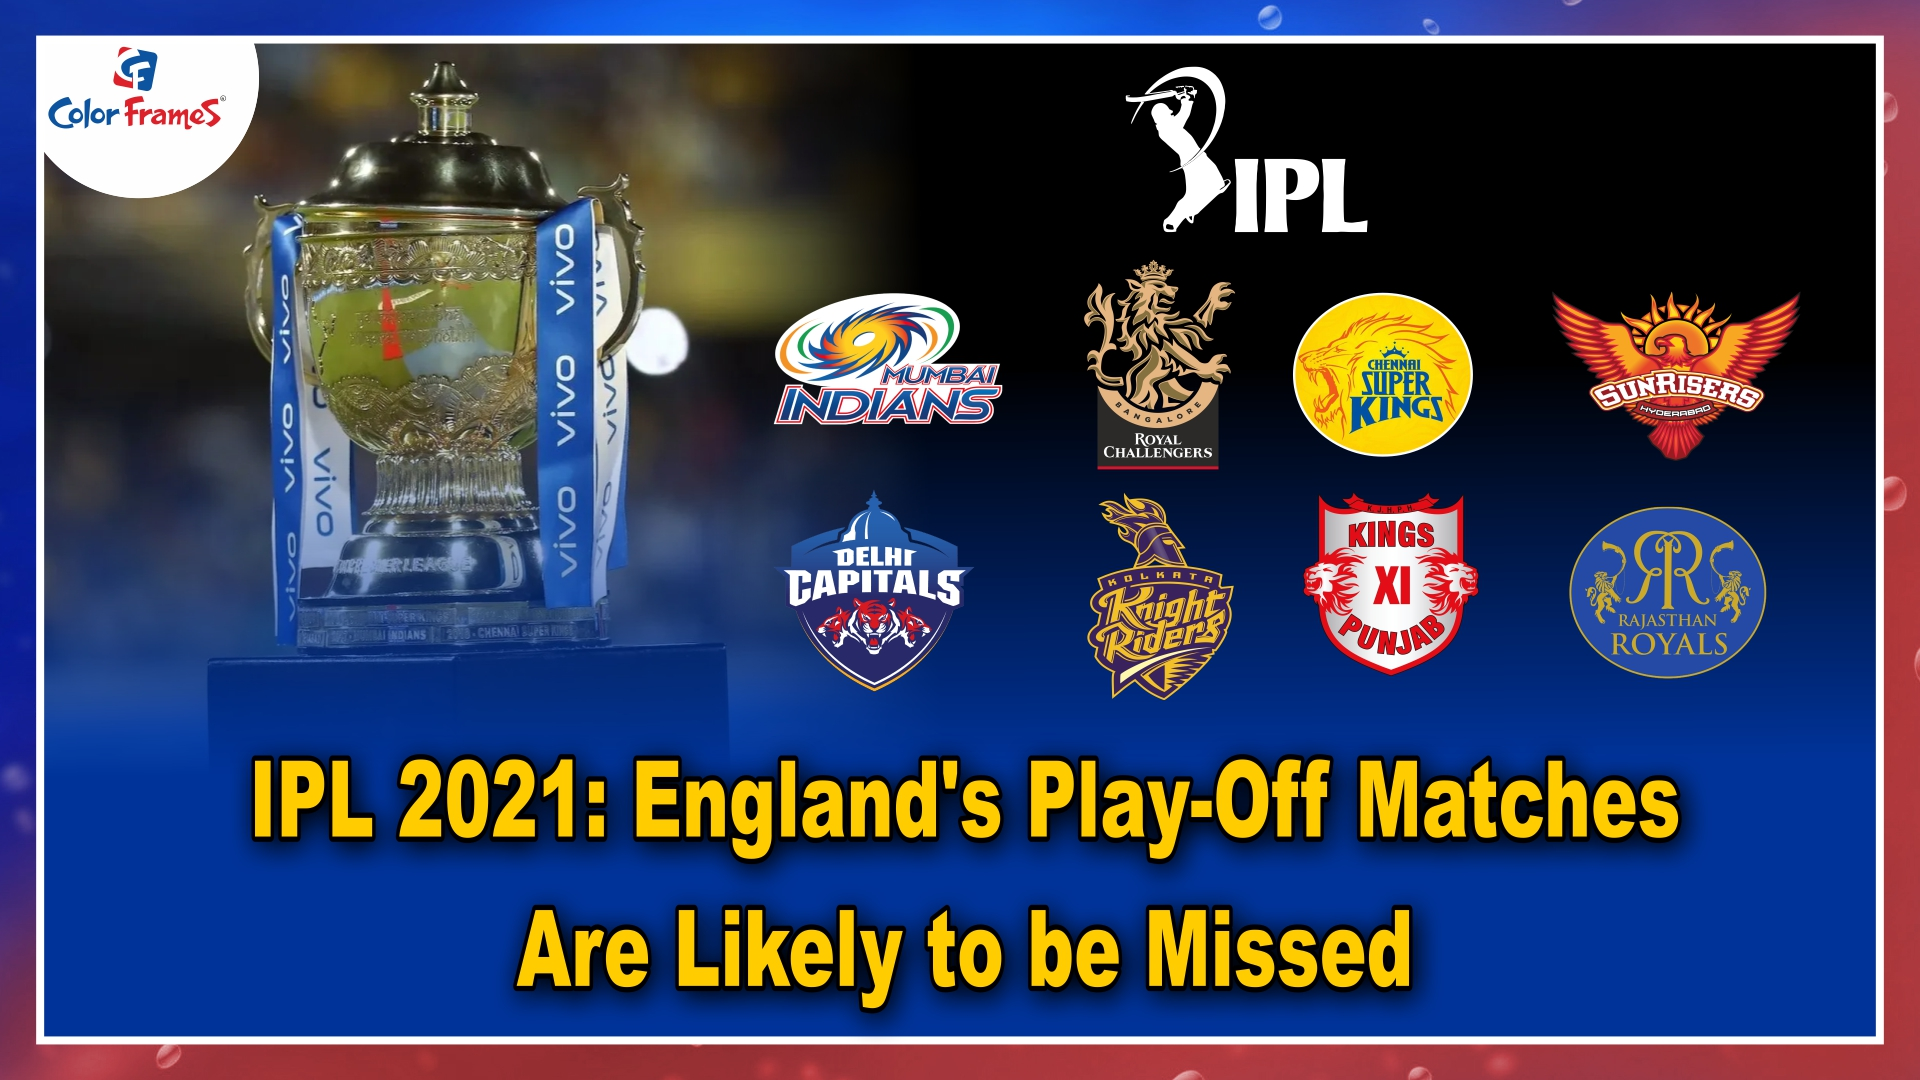 IPL 2021: England's Play-Off Matches Are Likely to be Missed